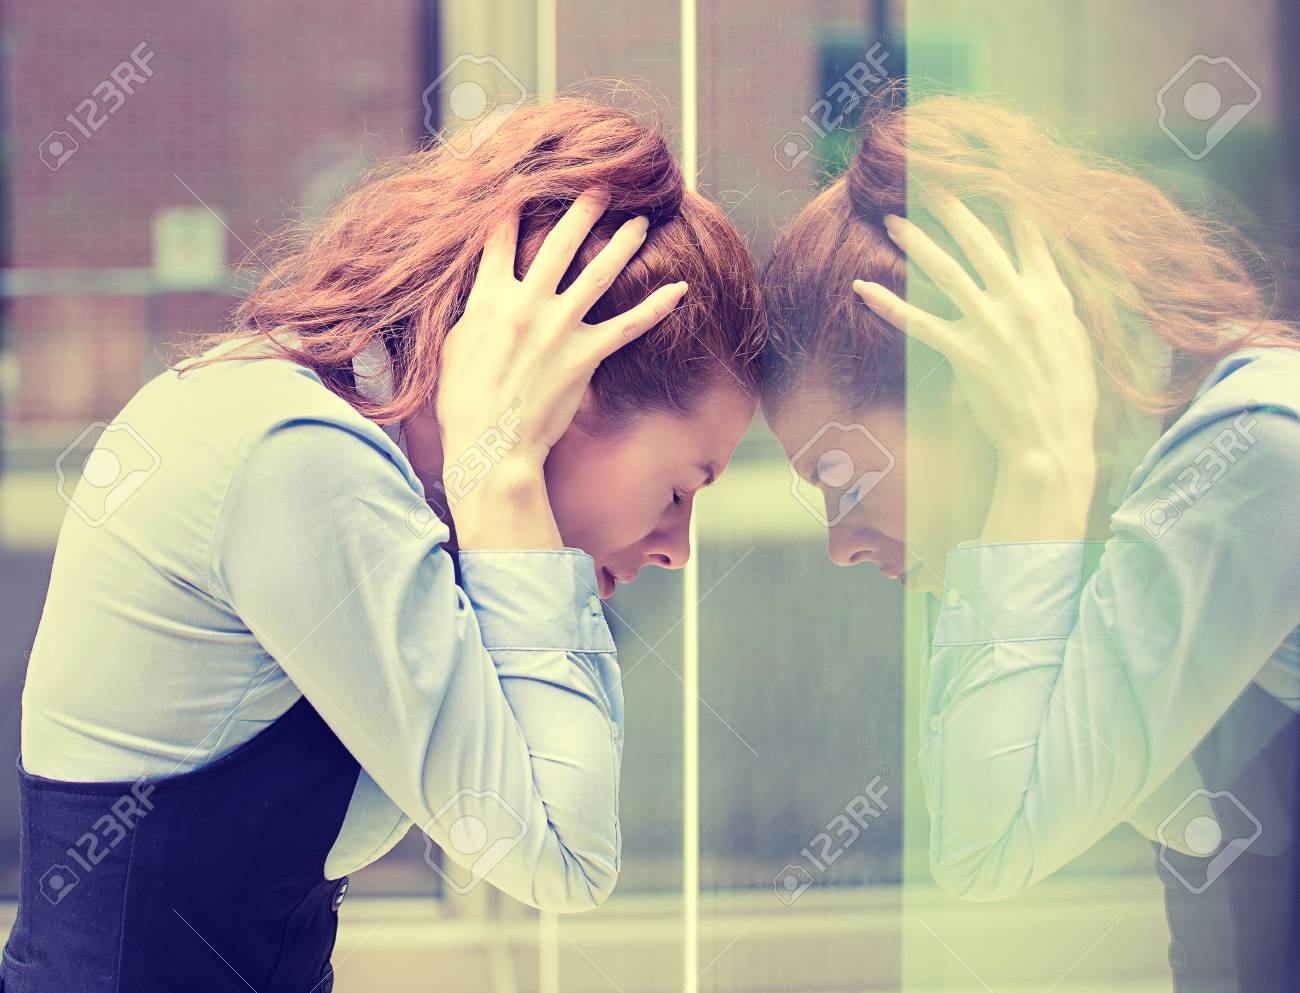 portrait stressed sad young woman outdoors. City urban life style stress - 50100584